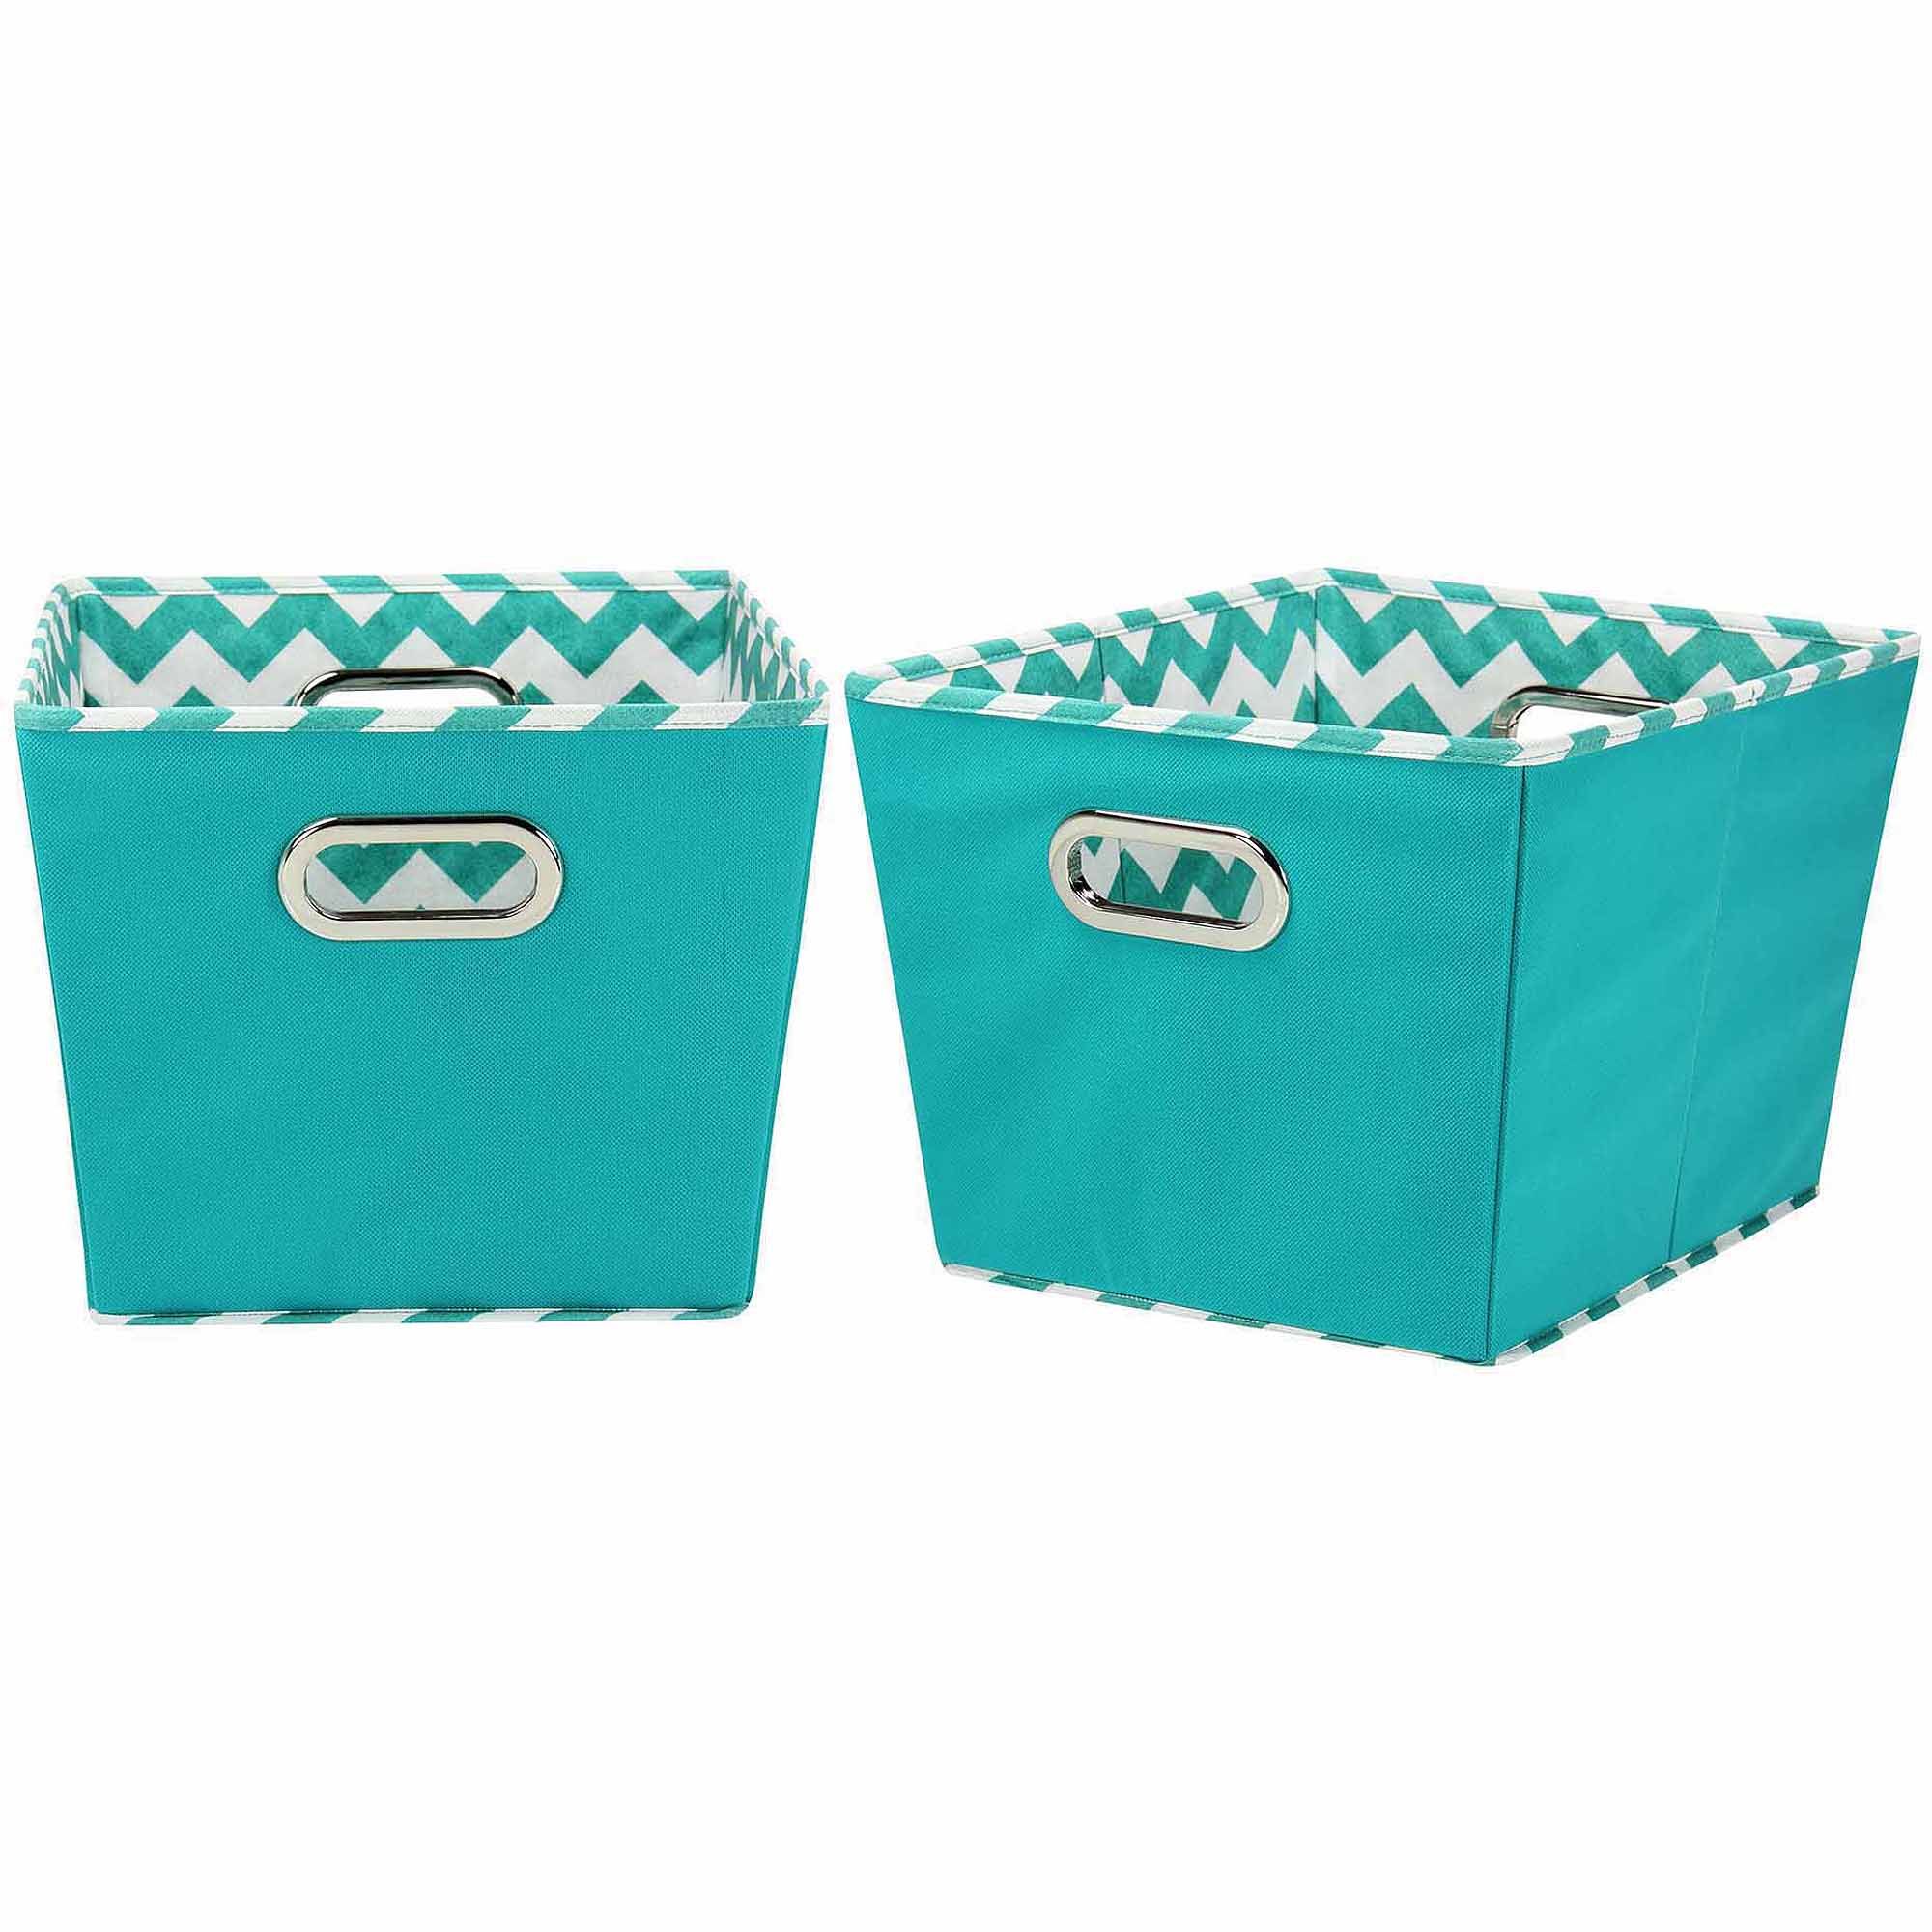 Household Essentials Medium Decorative Storage Bins, 2pk, Aqua And Chevron    Walmart.com